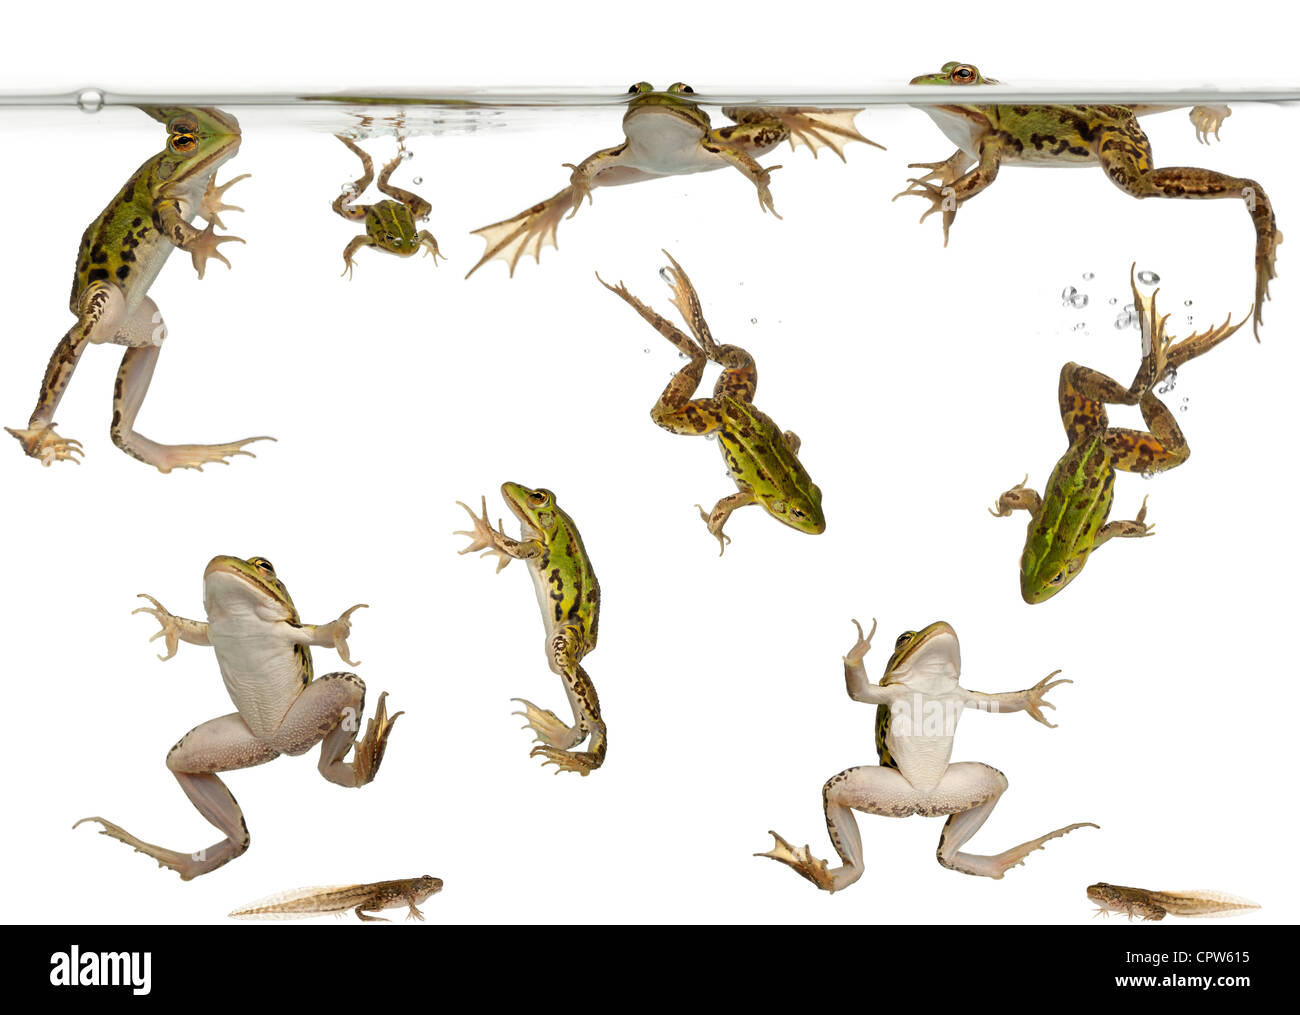 Edible Frogs, Rana esculenta, and tadpoles swimming under water against white background - Stock Image